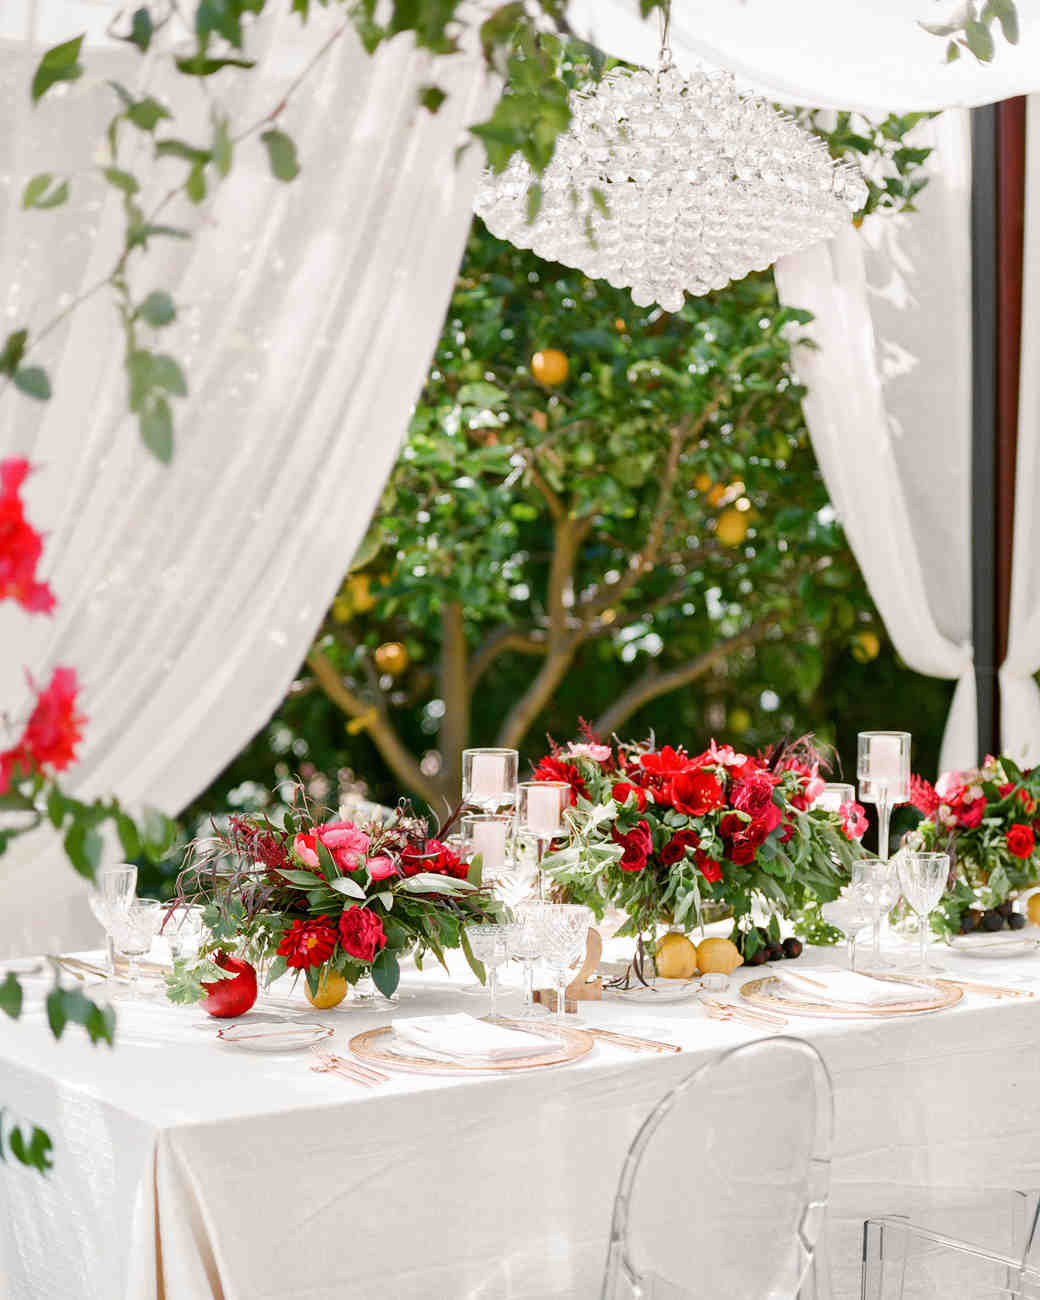 Images Of Wedding Reception Decorations: 47 Hanging Wedding Décor Ideas